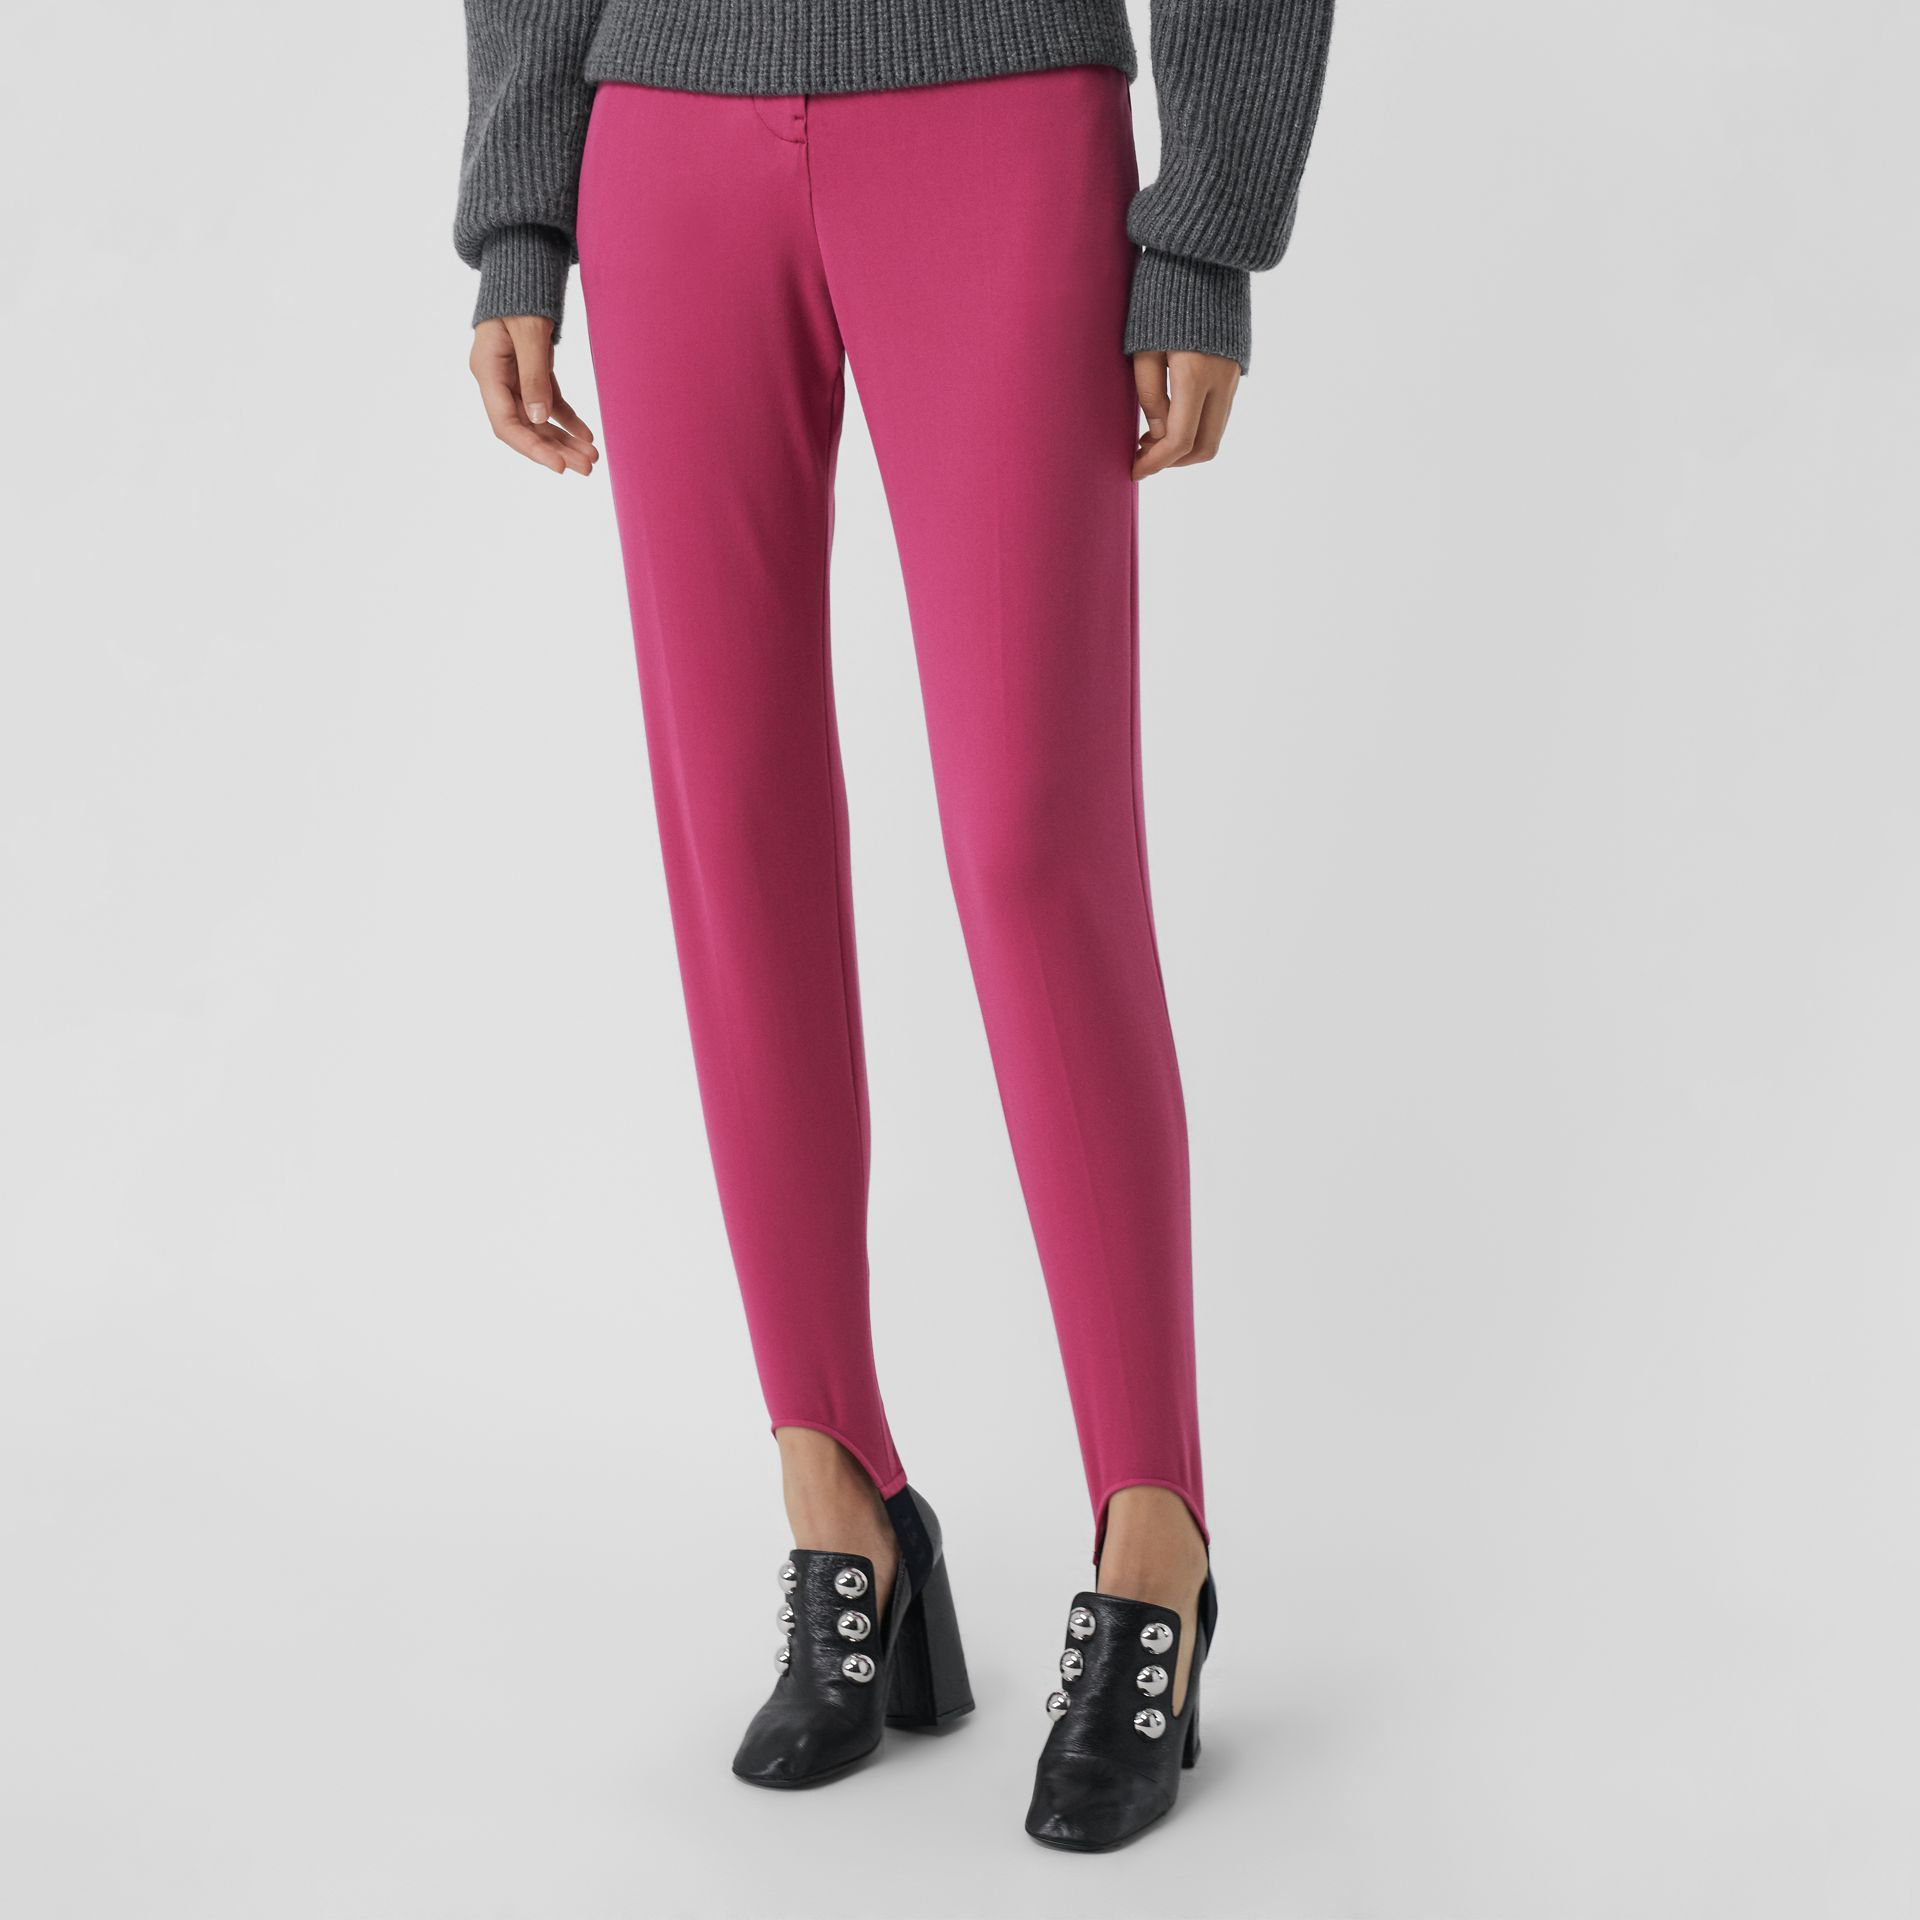 Cotton Blend Tailored Jodhpurs in Plum Pink - Women | Burberry - gallery image 5